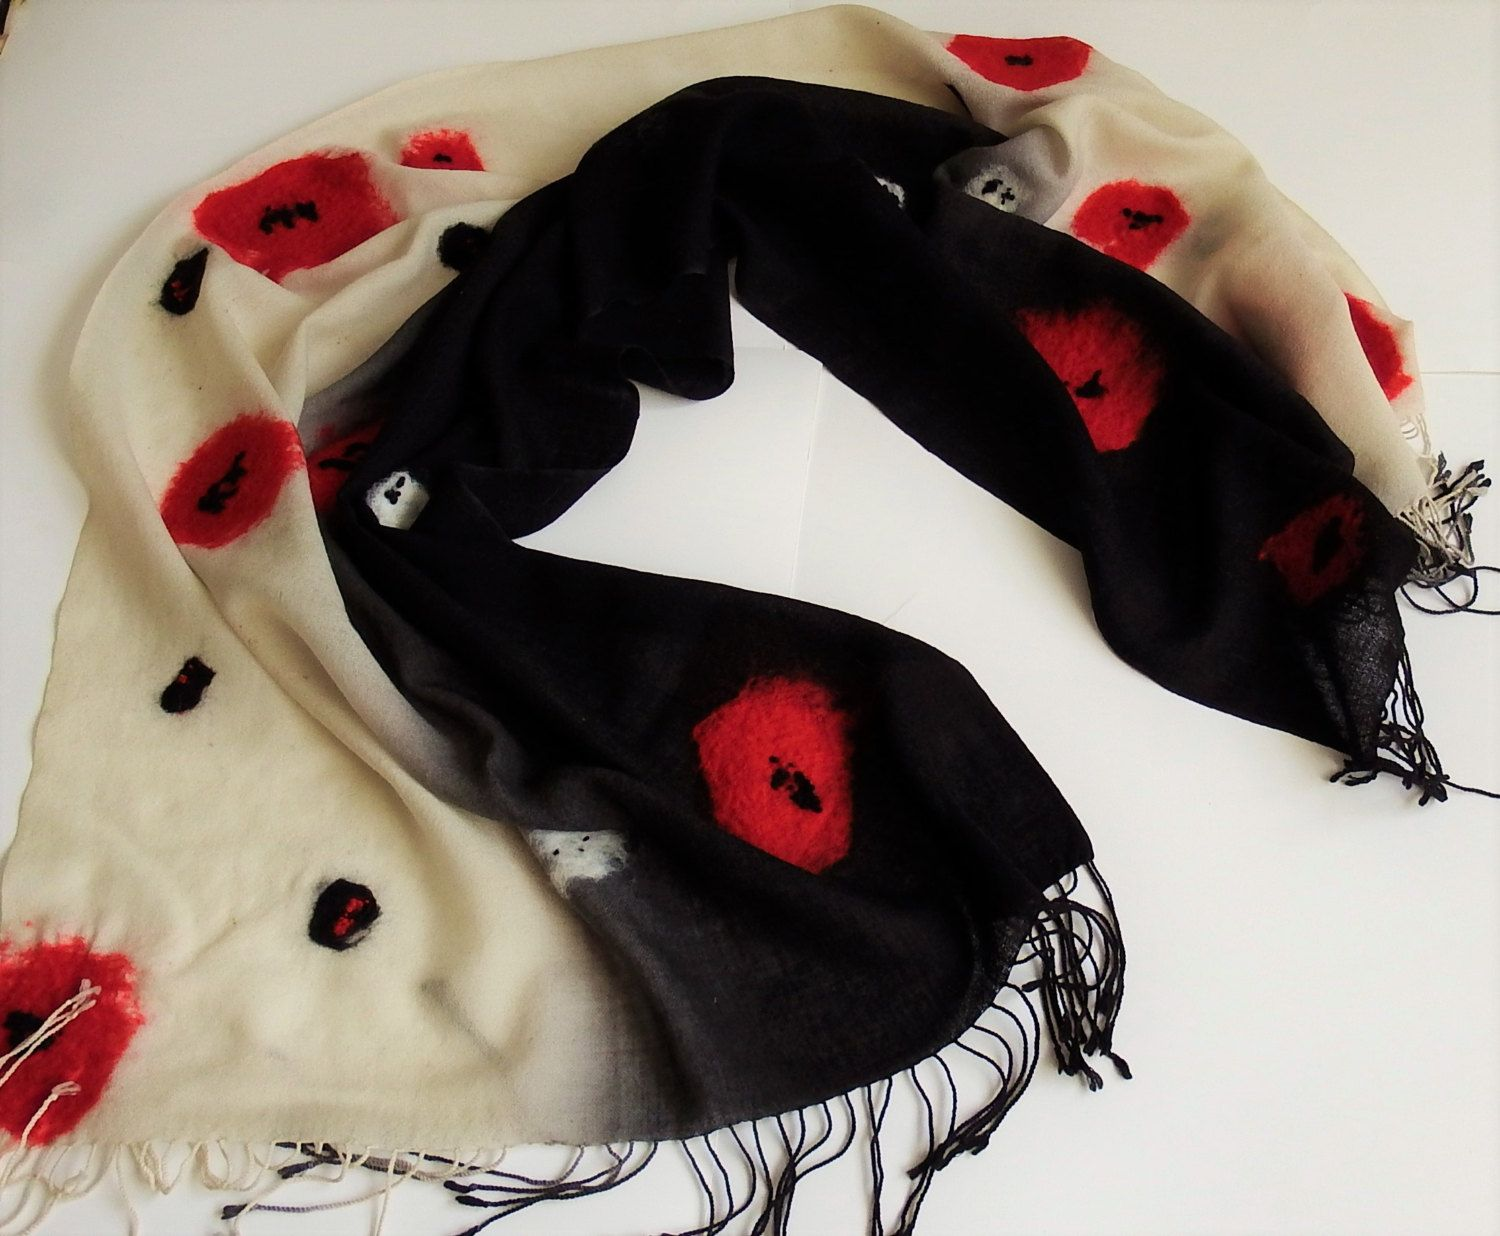 Wool shawl, nunofelted, wrap with red flowers, poppies, Christmas gift, textile scarf, for her, winter unique accessory, wearable art, 2017 by Katrinmania on Etsy